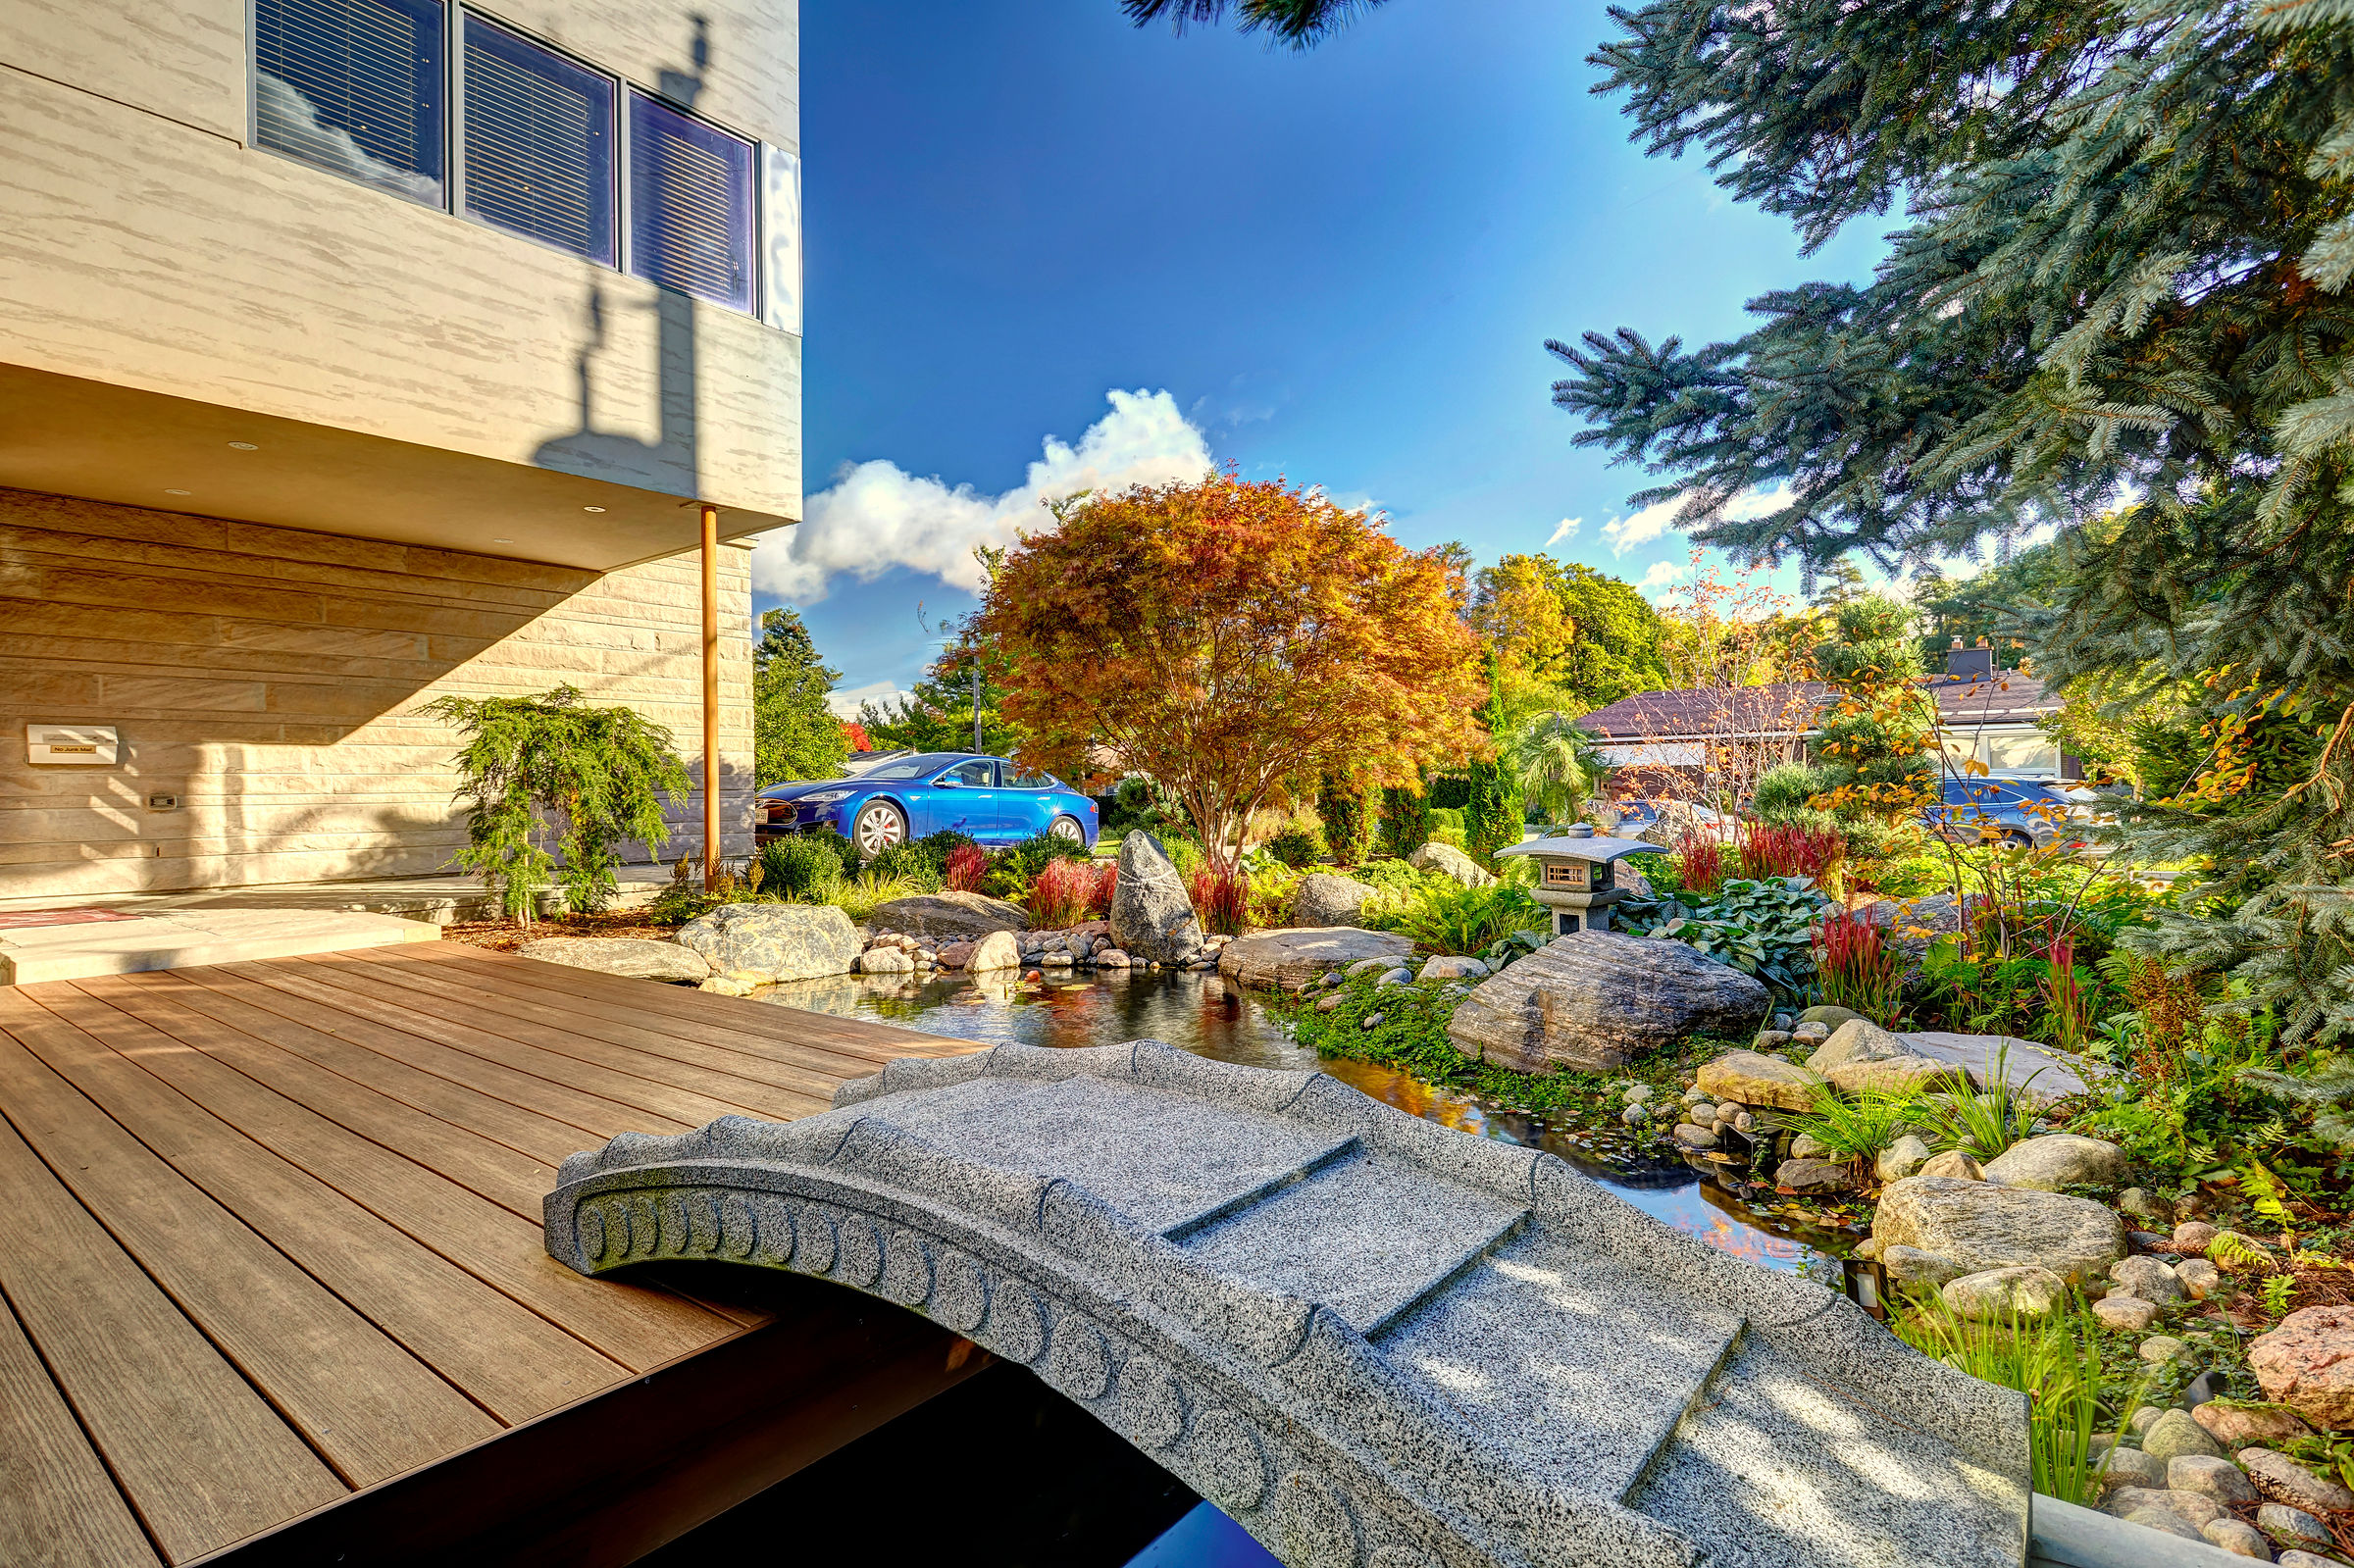 This small bridge is a great stylistic detail that completes the Japanese garden look, and also leads to back yard access.